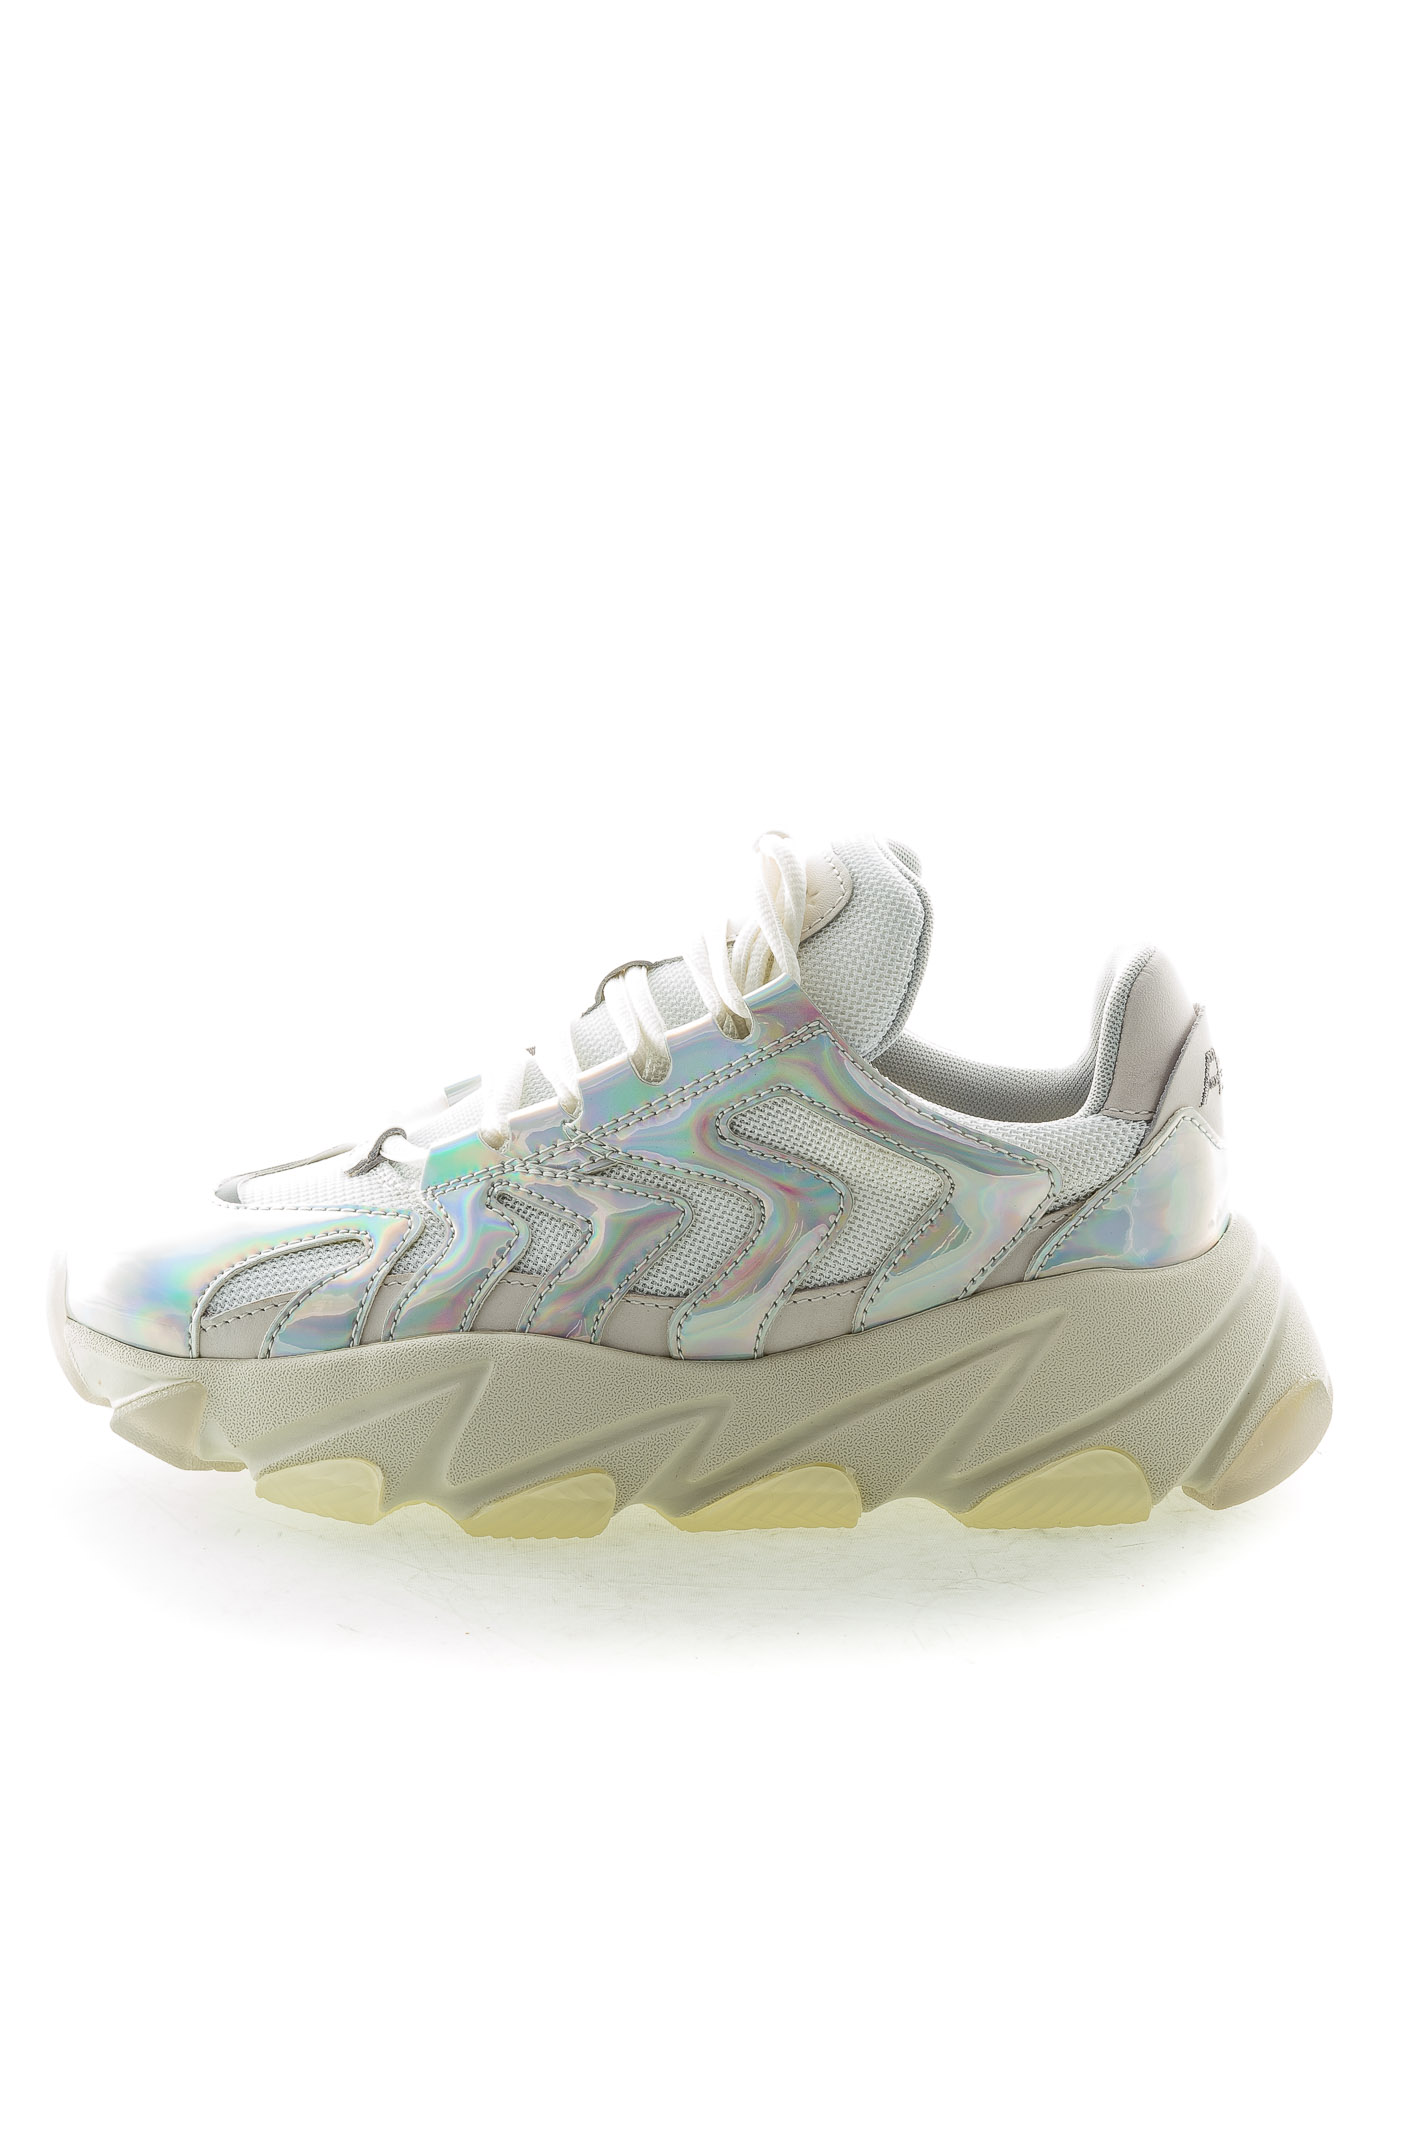 EXTREMEPELLE/MESH-WHT/SIL